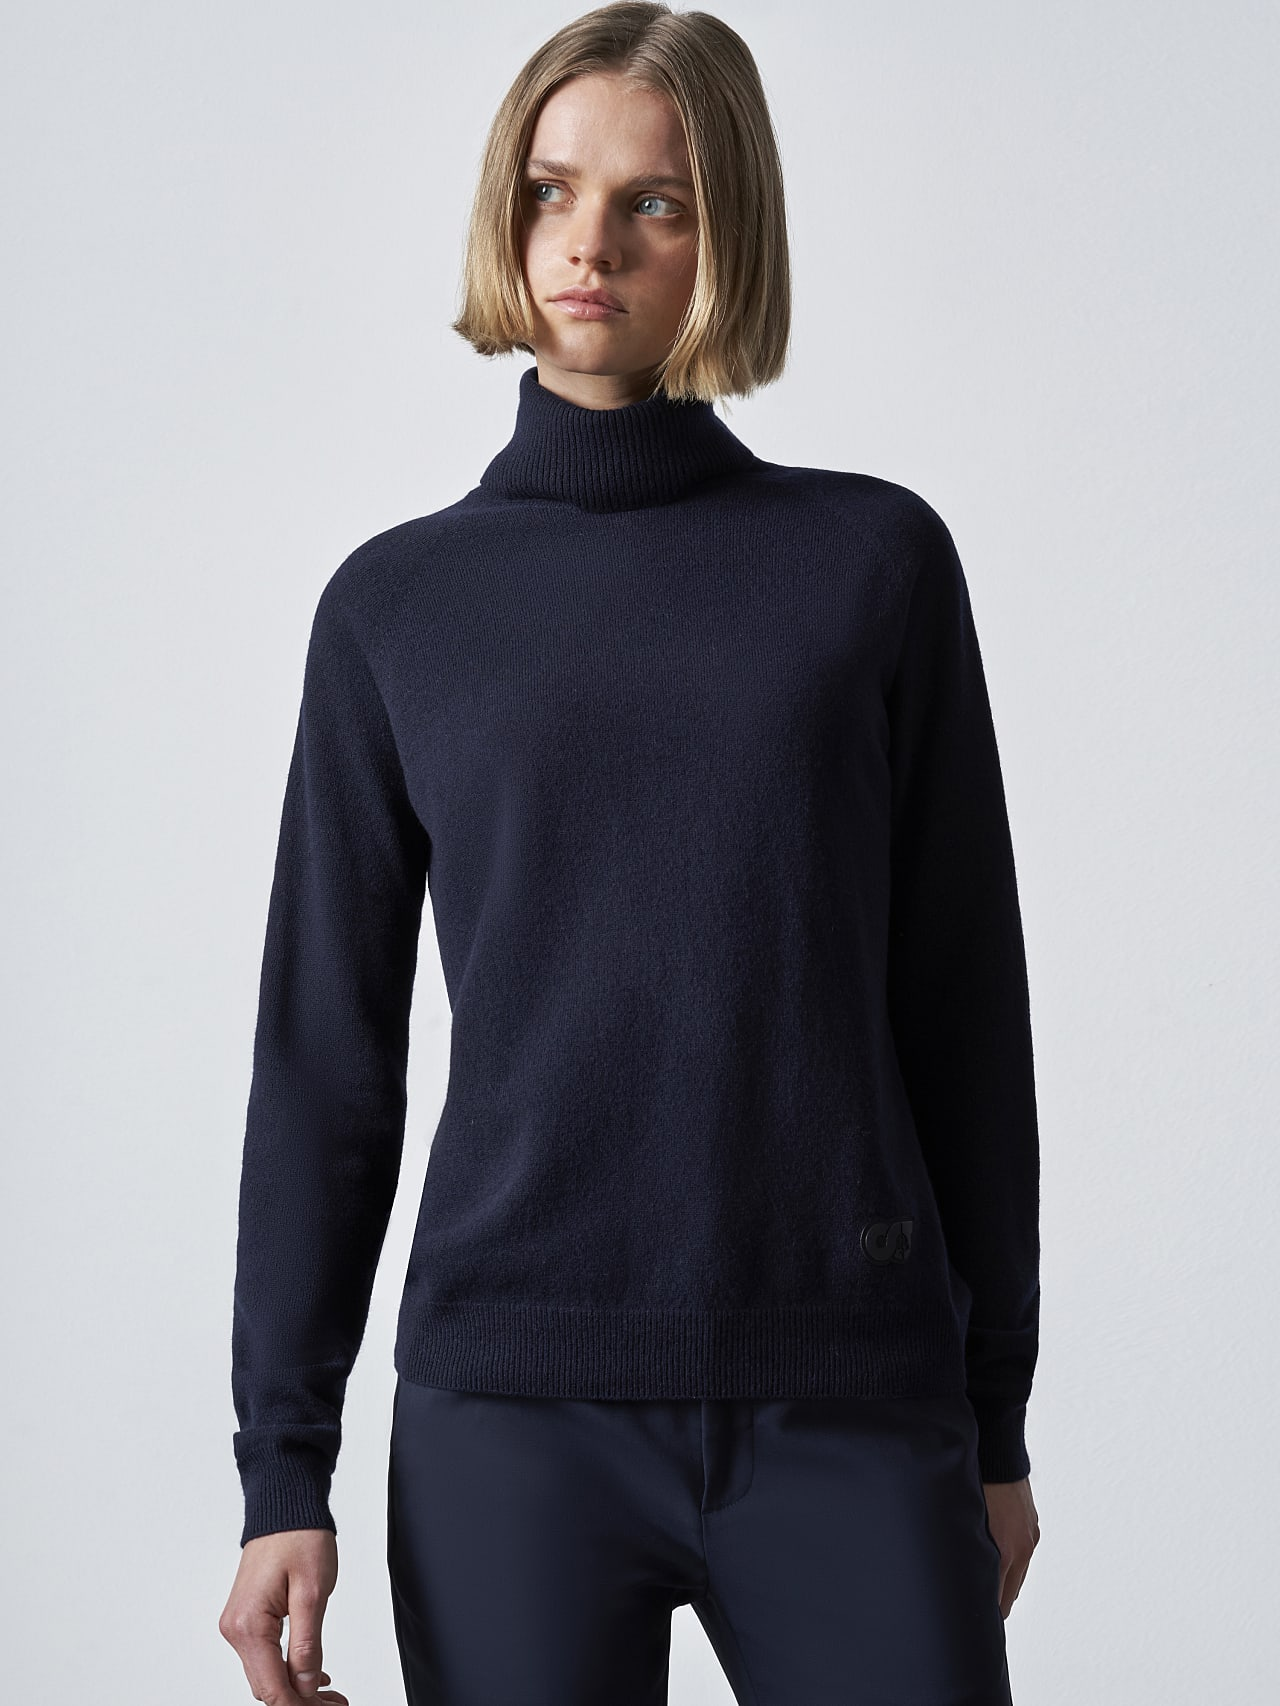 FLAMY V1.Y5.02 Seamless 3D Knit Merino-Cashmere Turtle Neck navy Right Alpha Tauri